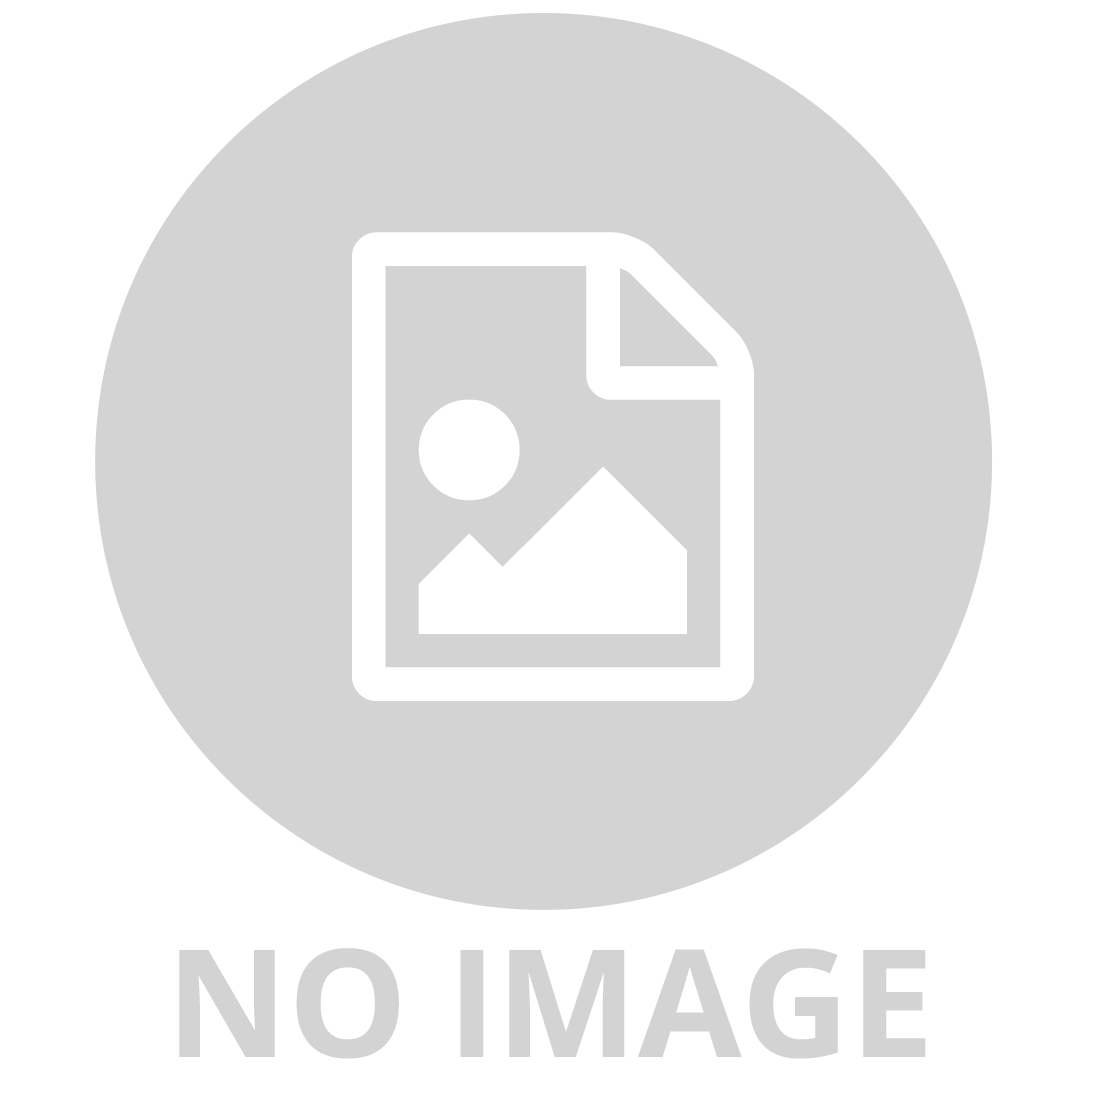 Rictus 6 Gold Single Pendant - Black Cord